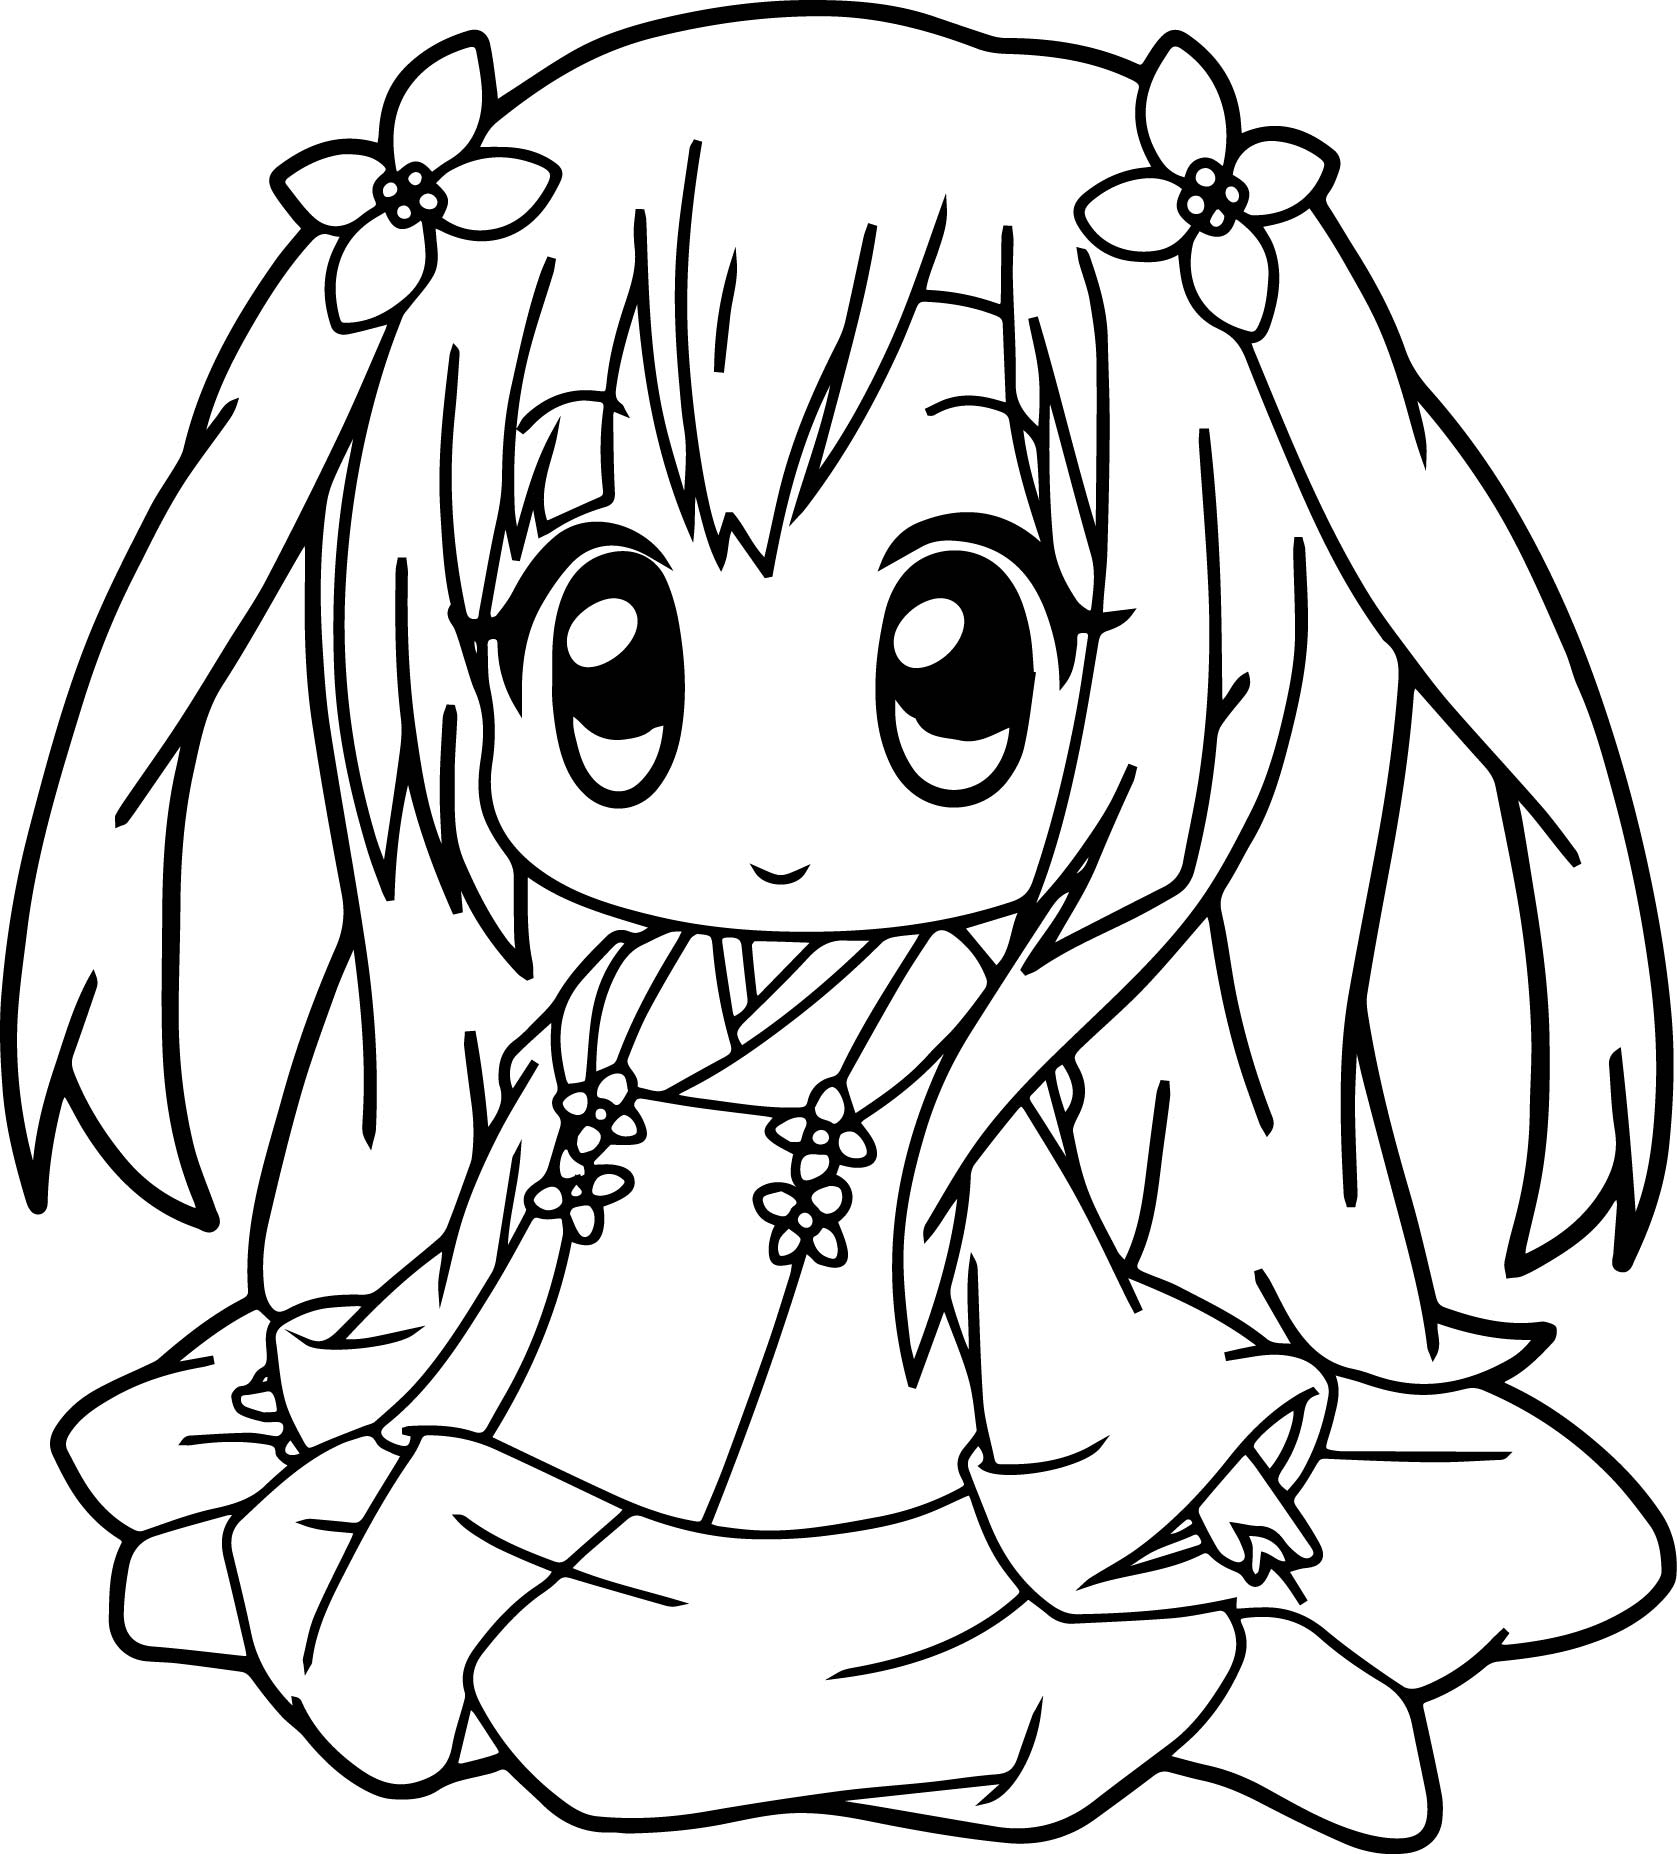 Very cute anime girl coloring page for Coloring pages that are cute